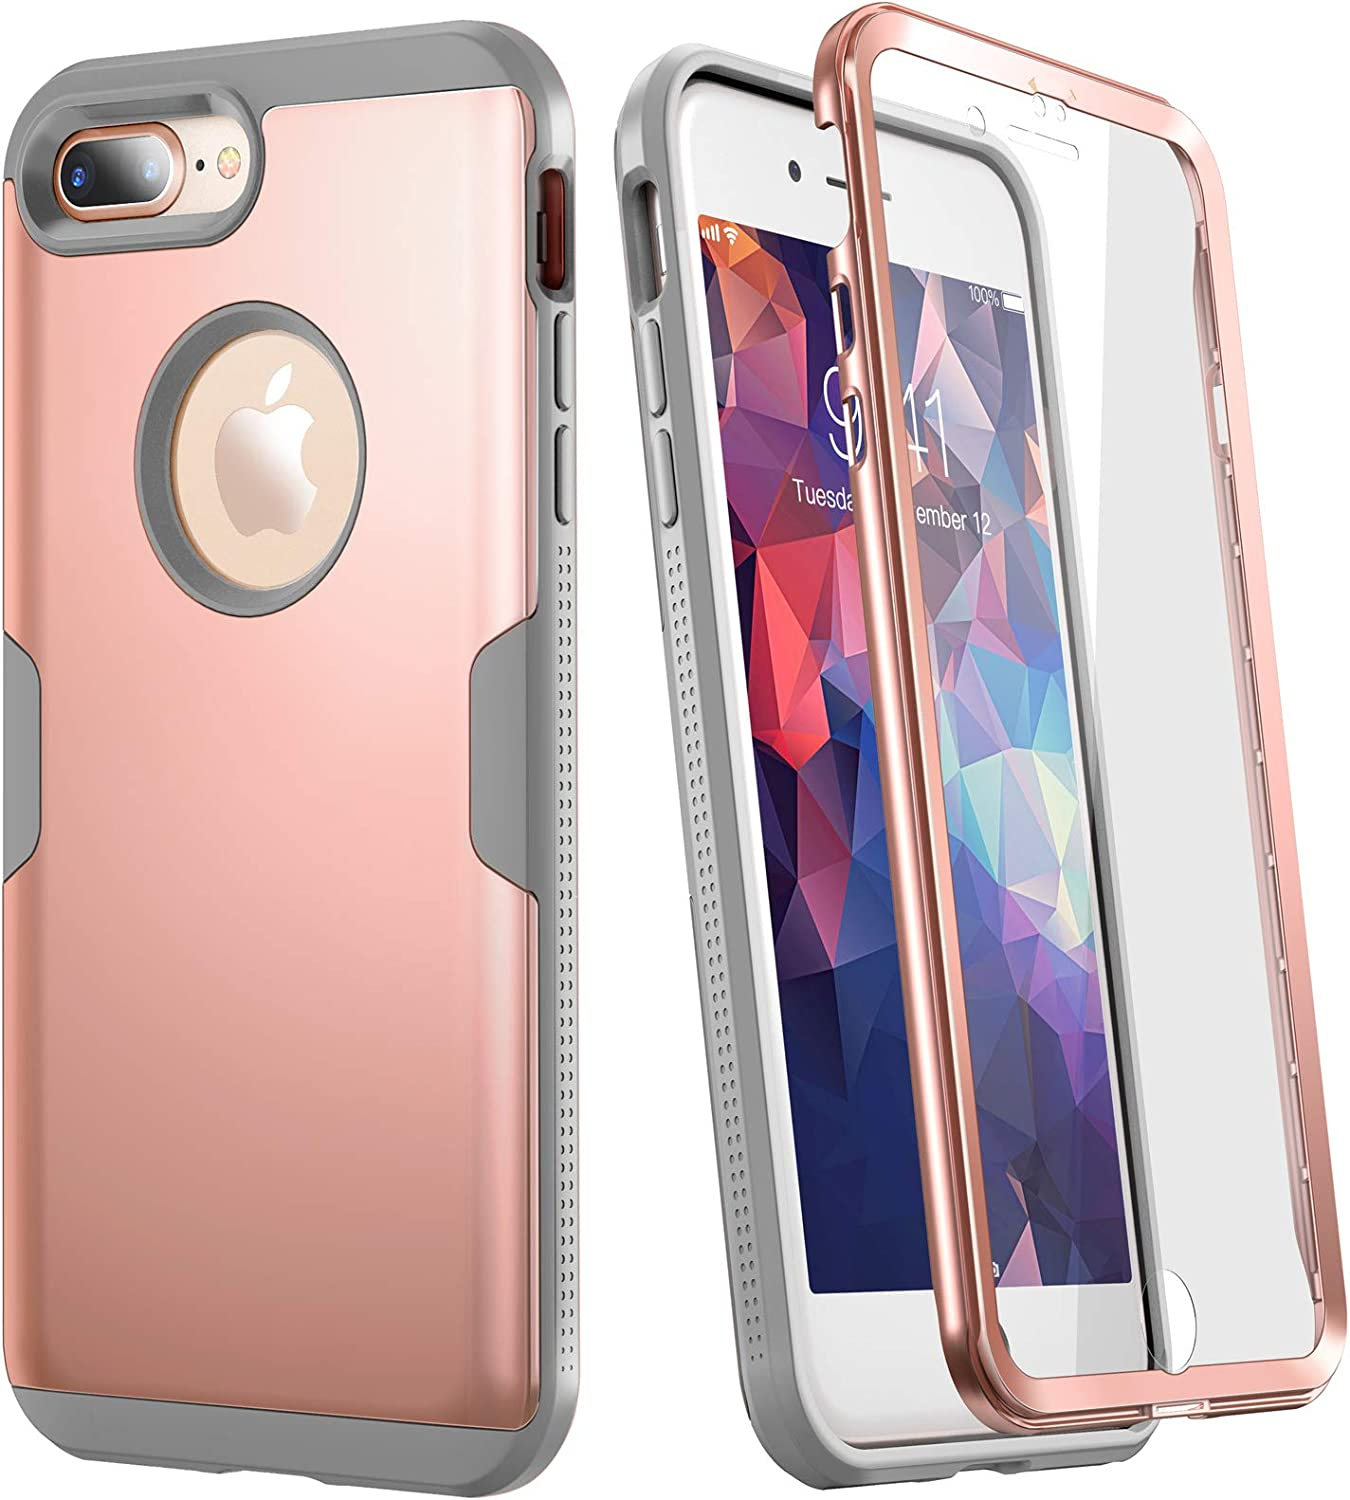 YOUMAKER Designed for iPhone 8 Plus Case&iPhone 7 Plus Case, Full Body Rugged with Built-in Screen Protector Heavy Duty Protection Slim Fit Shockproof Cover for iPhone 8 Plus (2017) 5.5 Inch-Rose/Gray